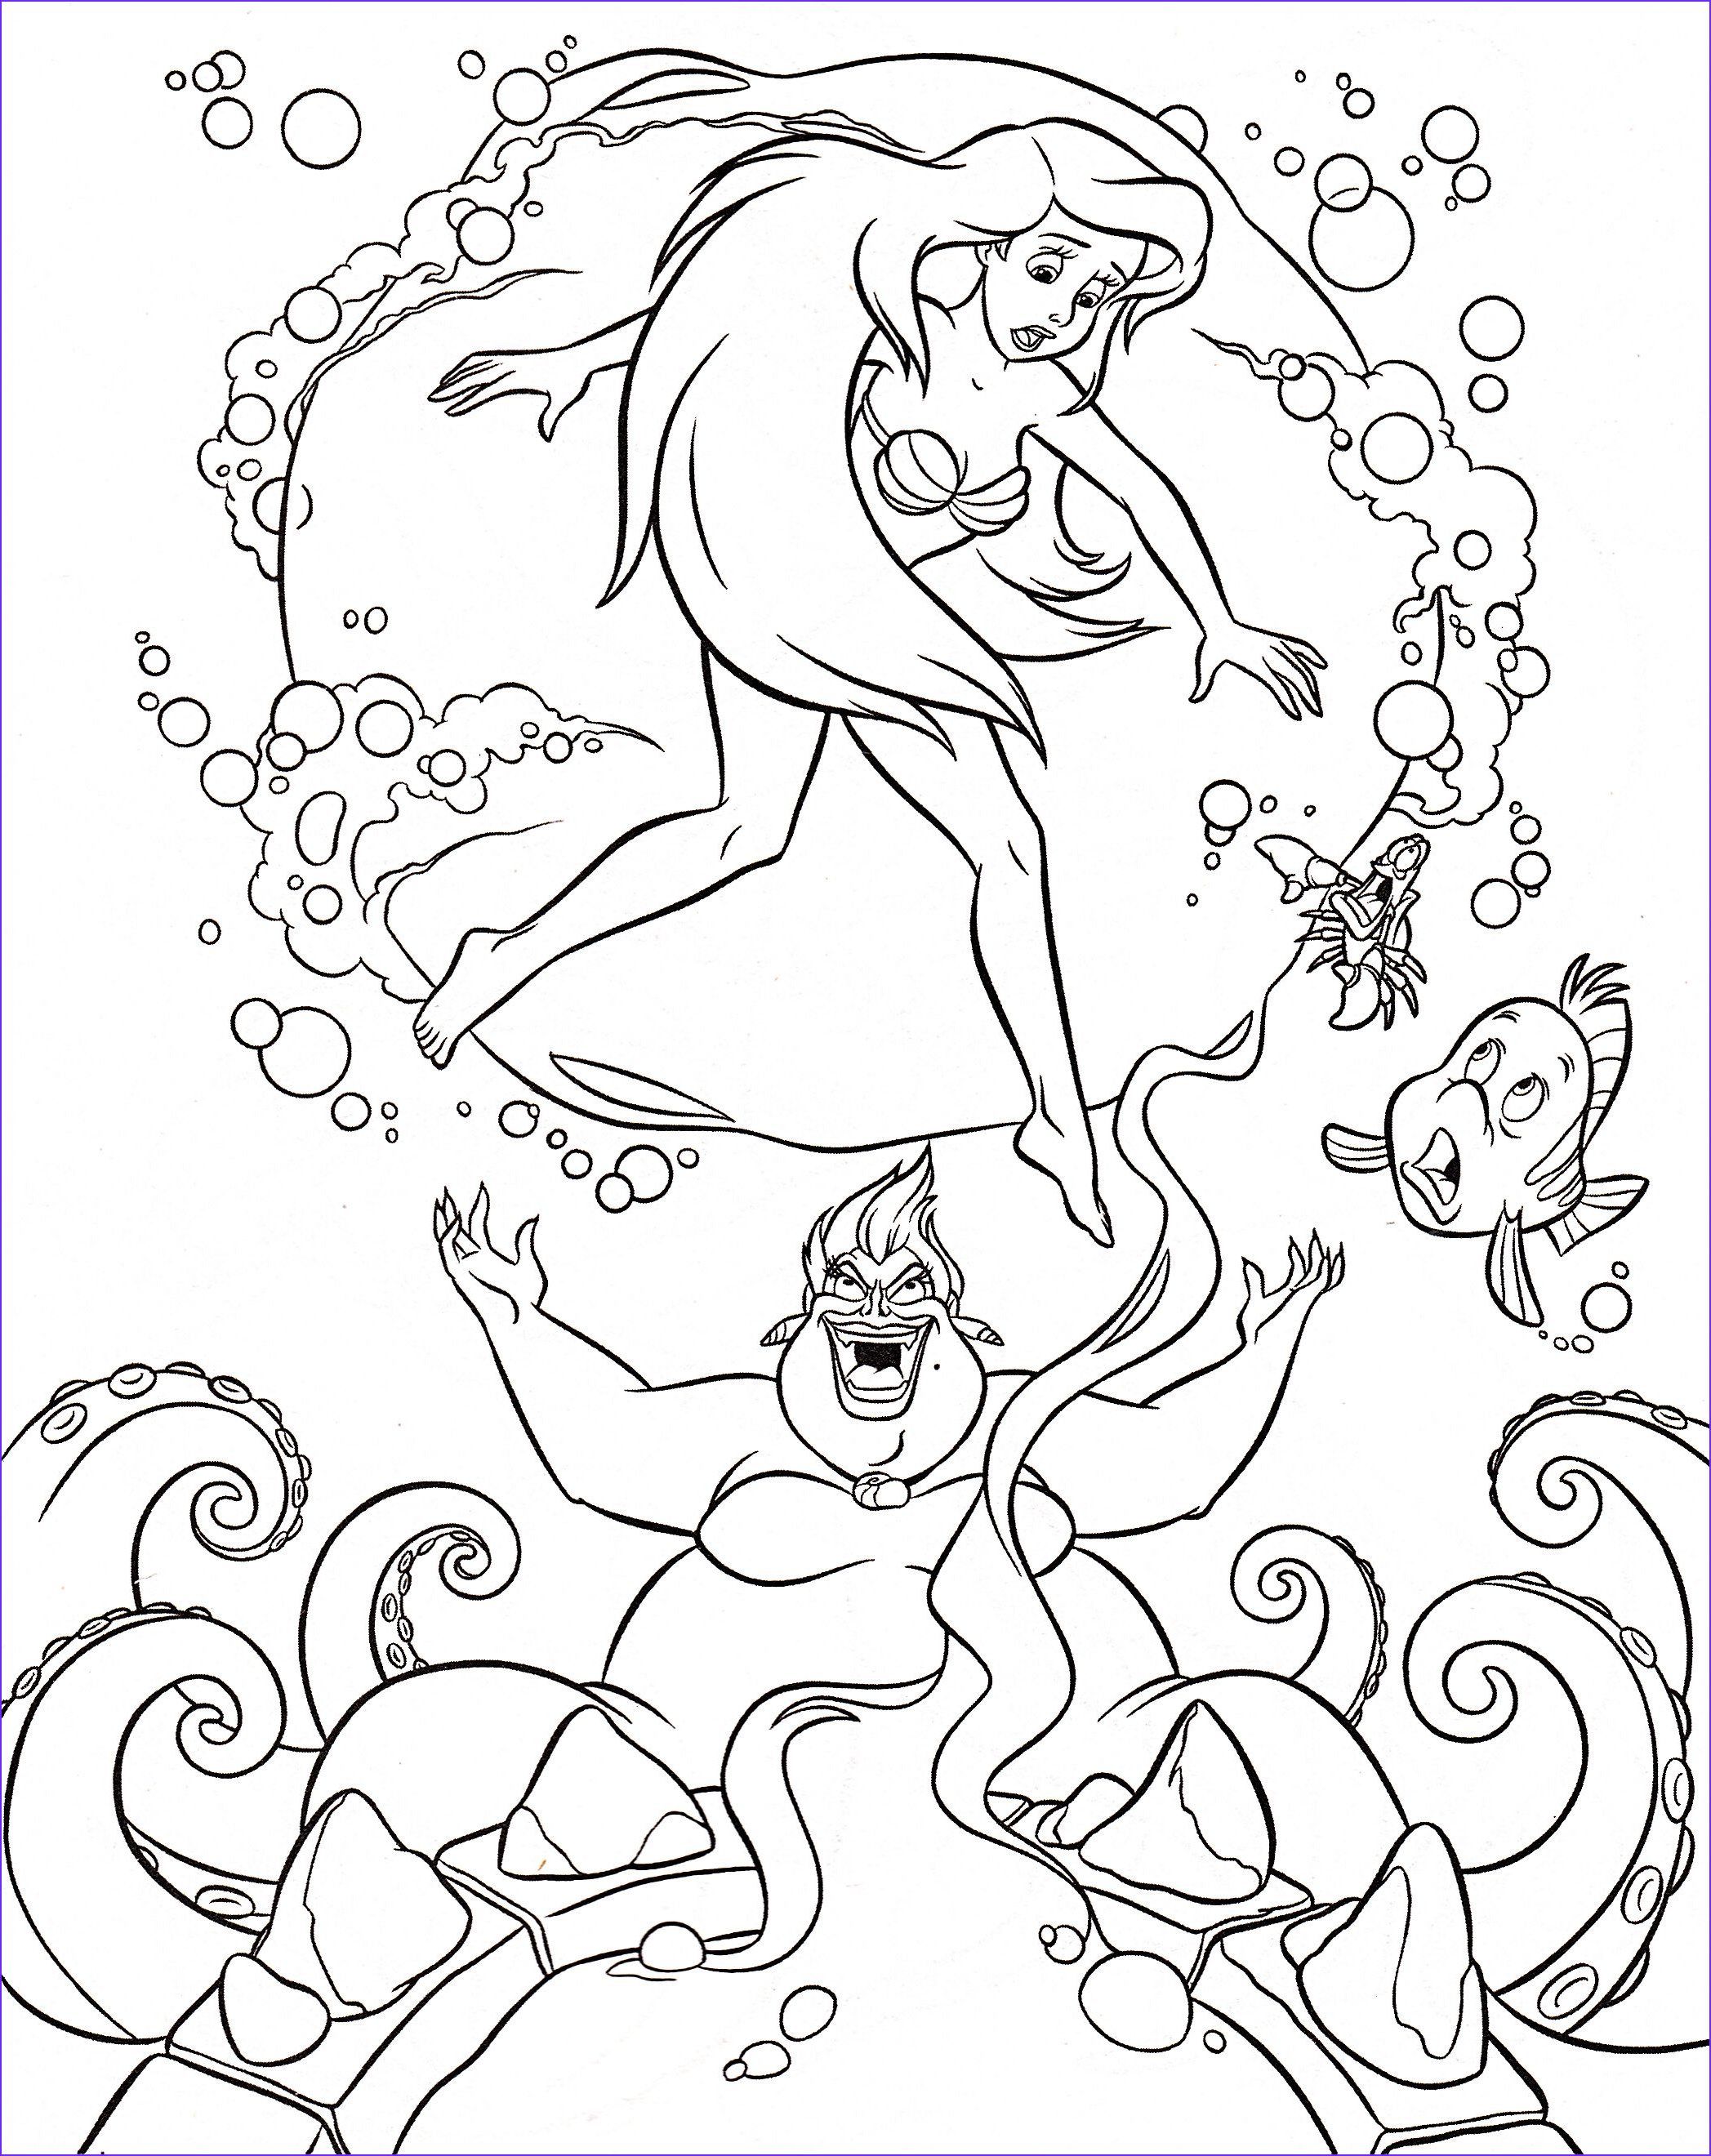 Disney Adult Coloring Pages New Gallery Walt Disney Coloring Pages Flounder Sebastian Princess